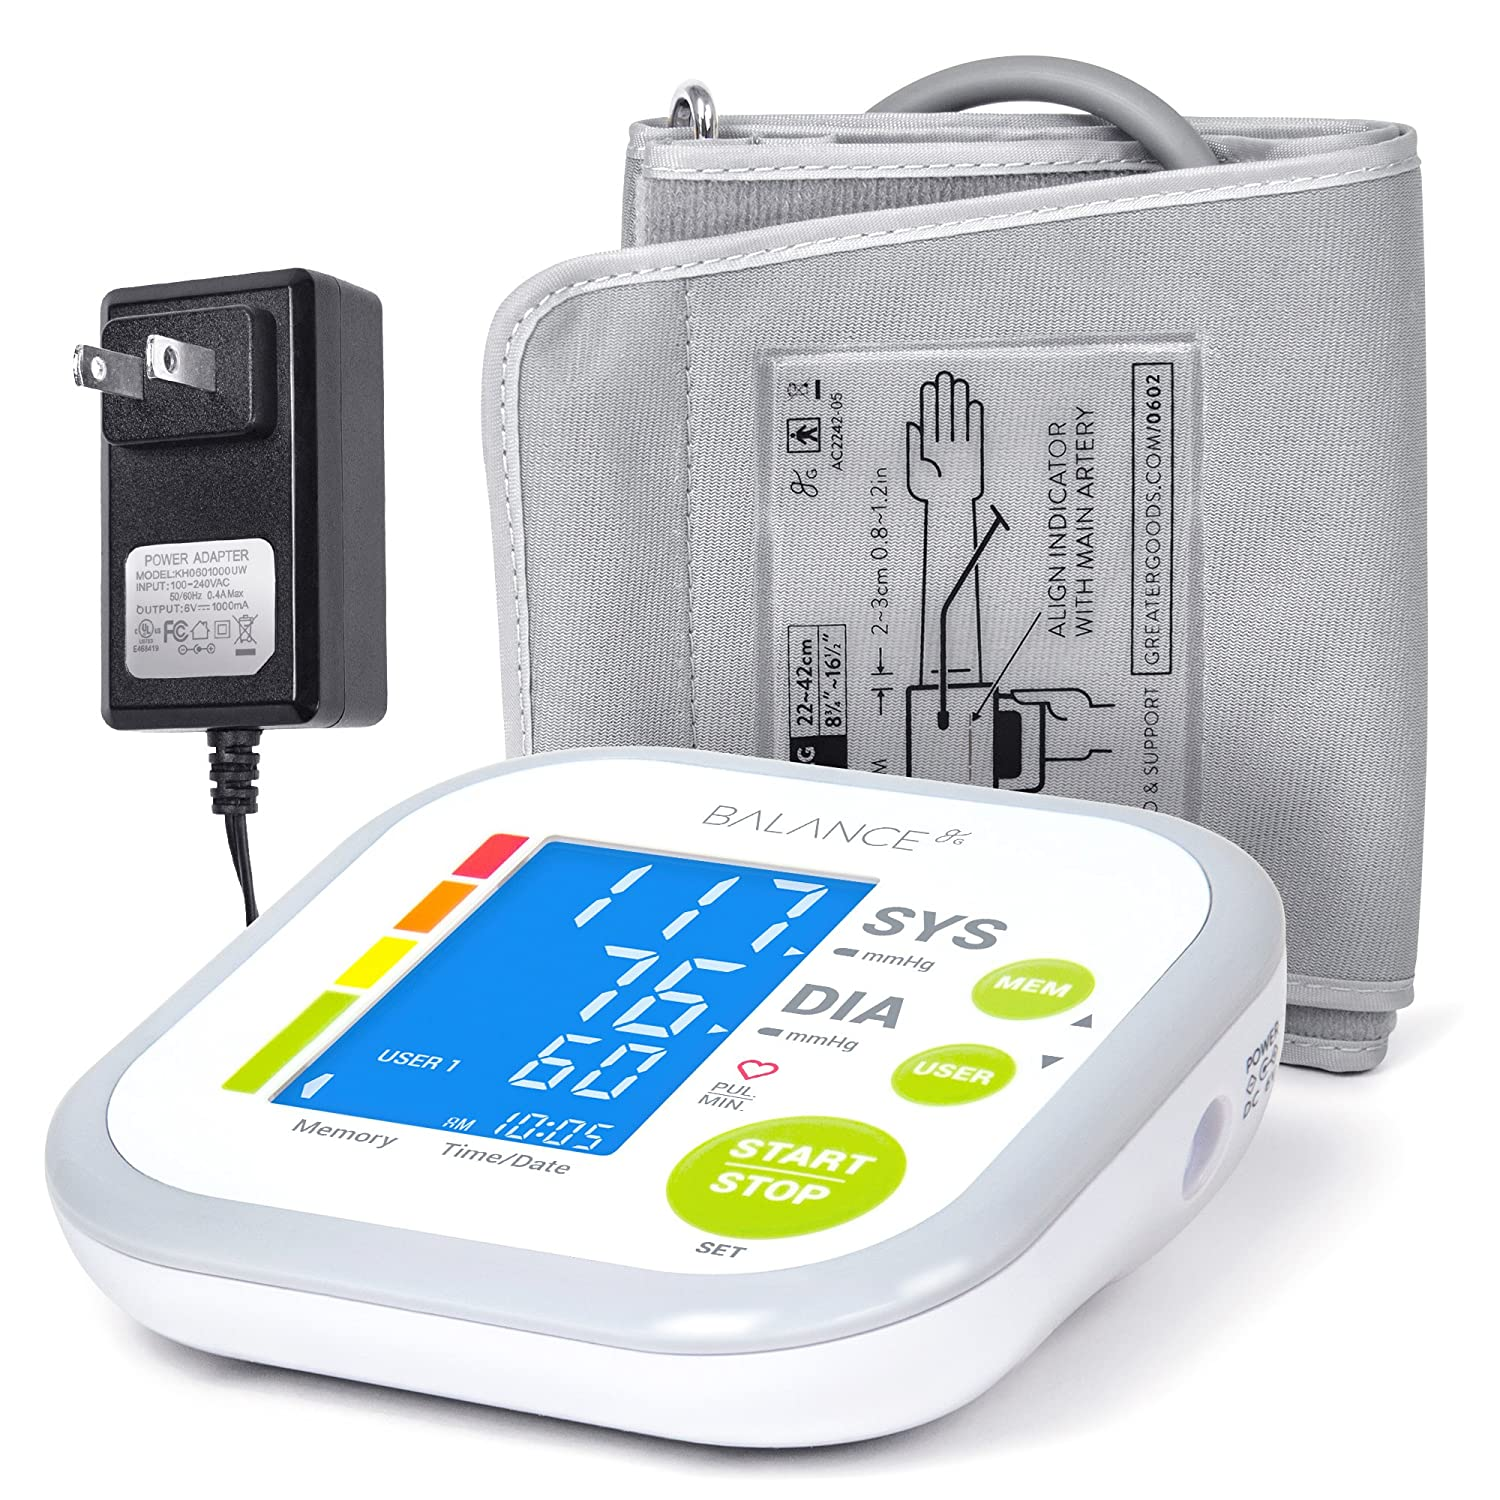 Greater Goods Blood Pressure Monitor Cuff Kit by Balance, Digital BP Meter with Large Display